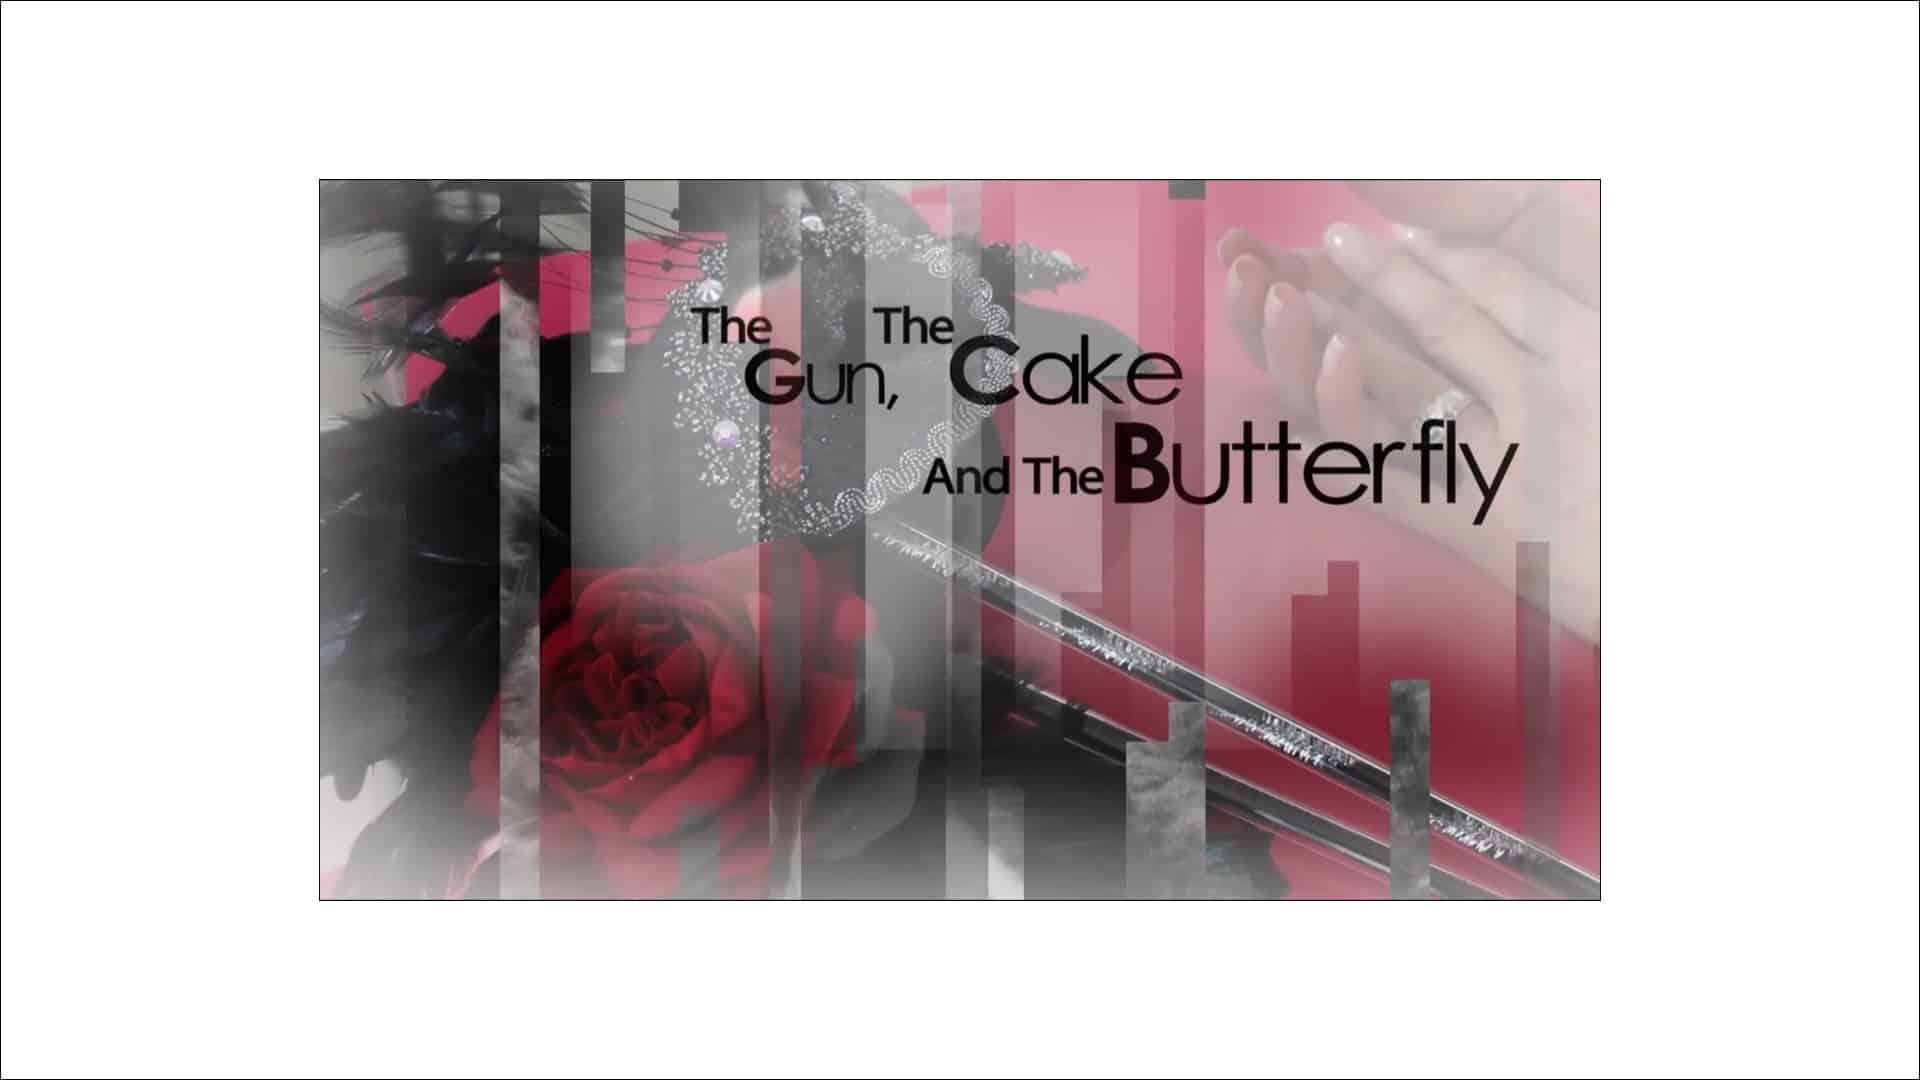 The Gun, The Cake And The Butterfly